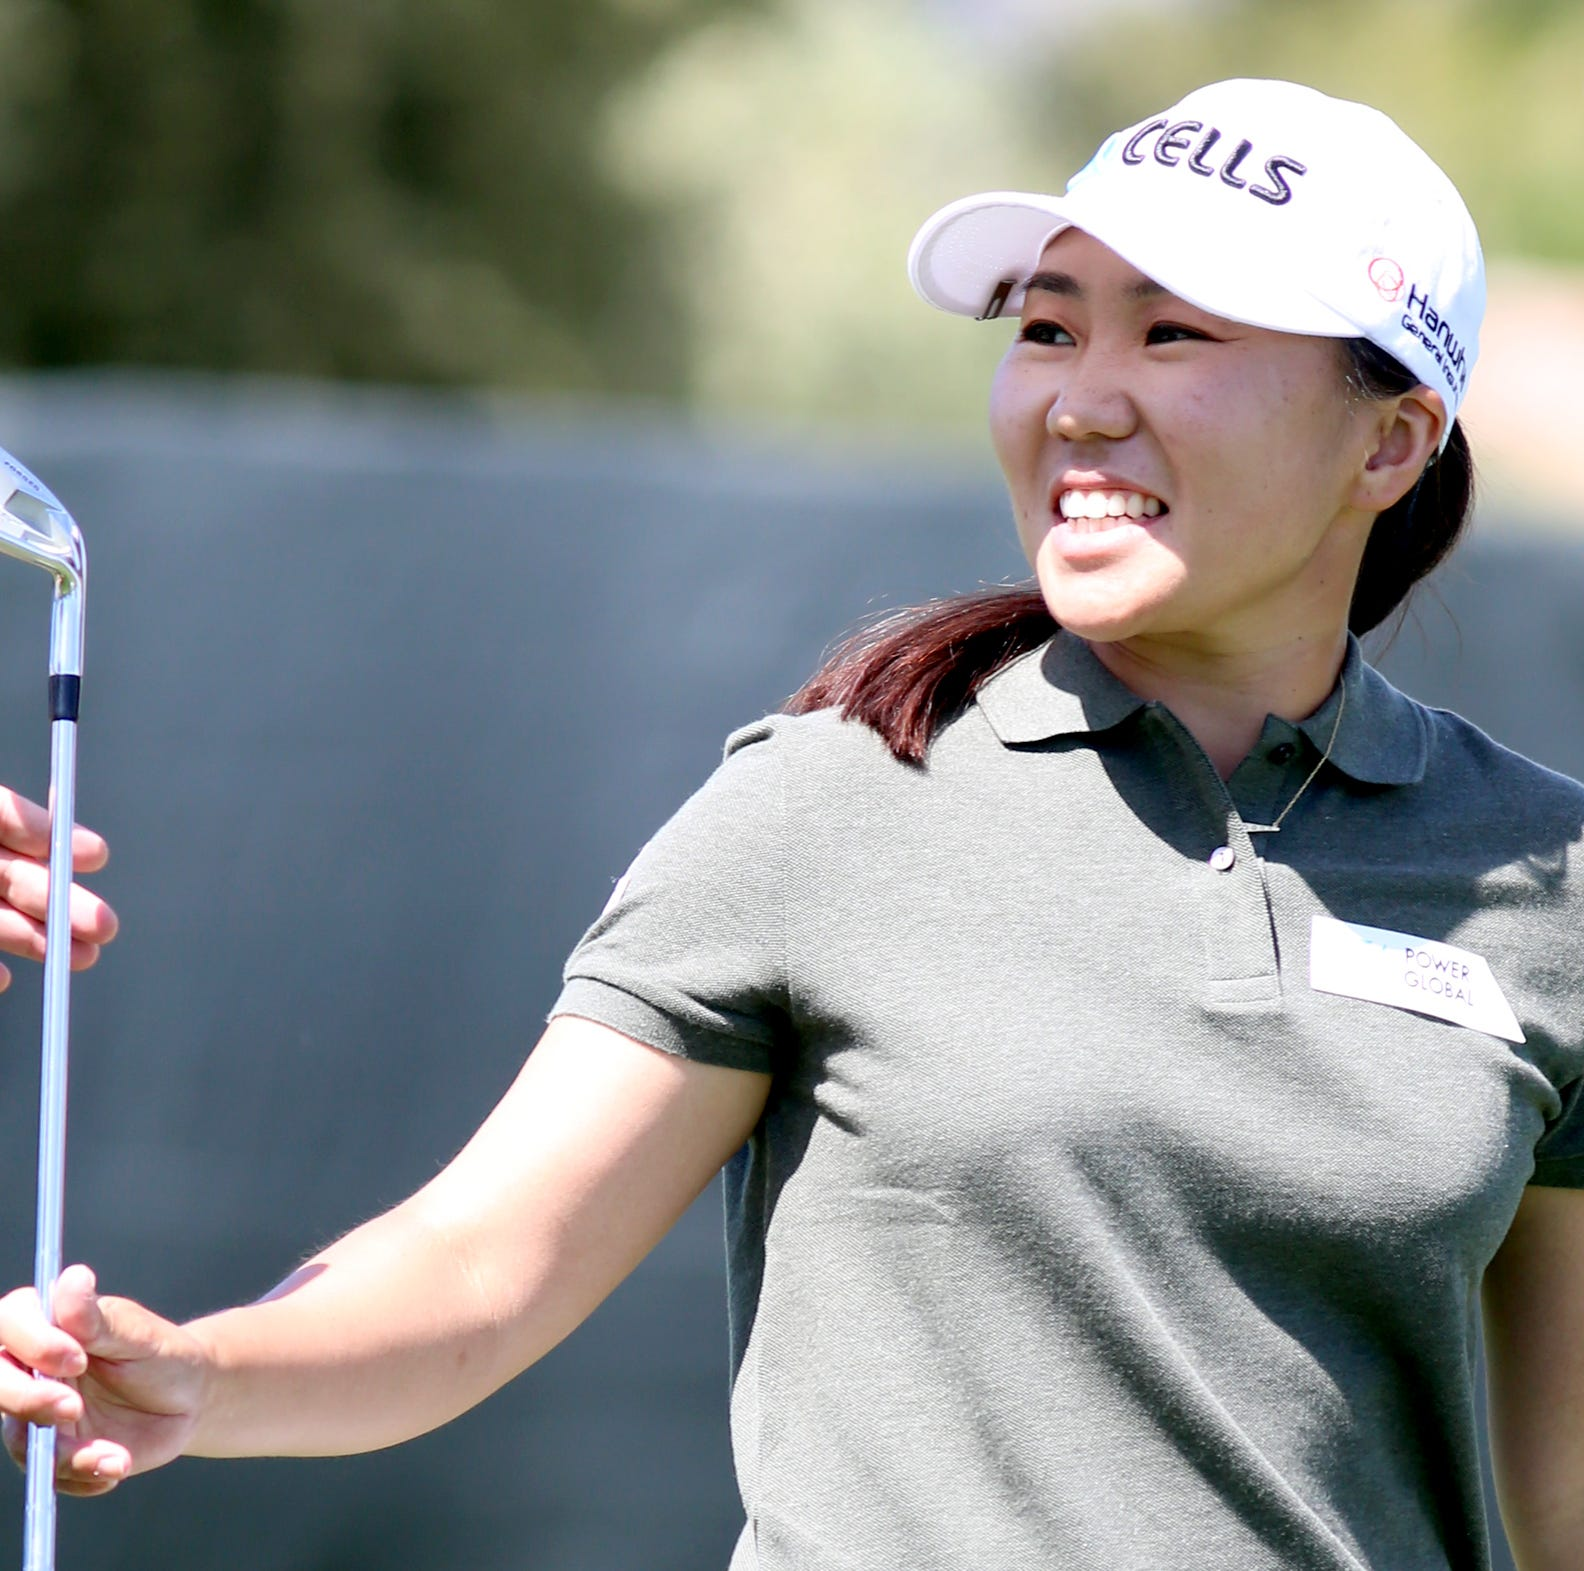 LPGA star IK Kim falls short in quest to qualify for men's U.S. Open